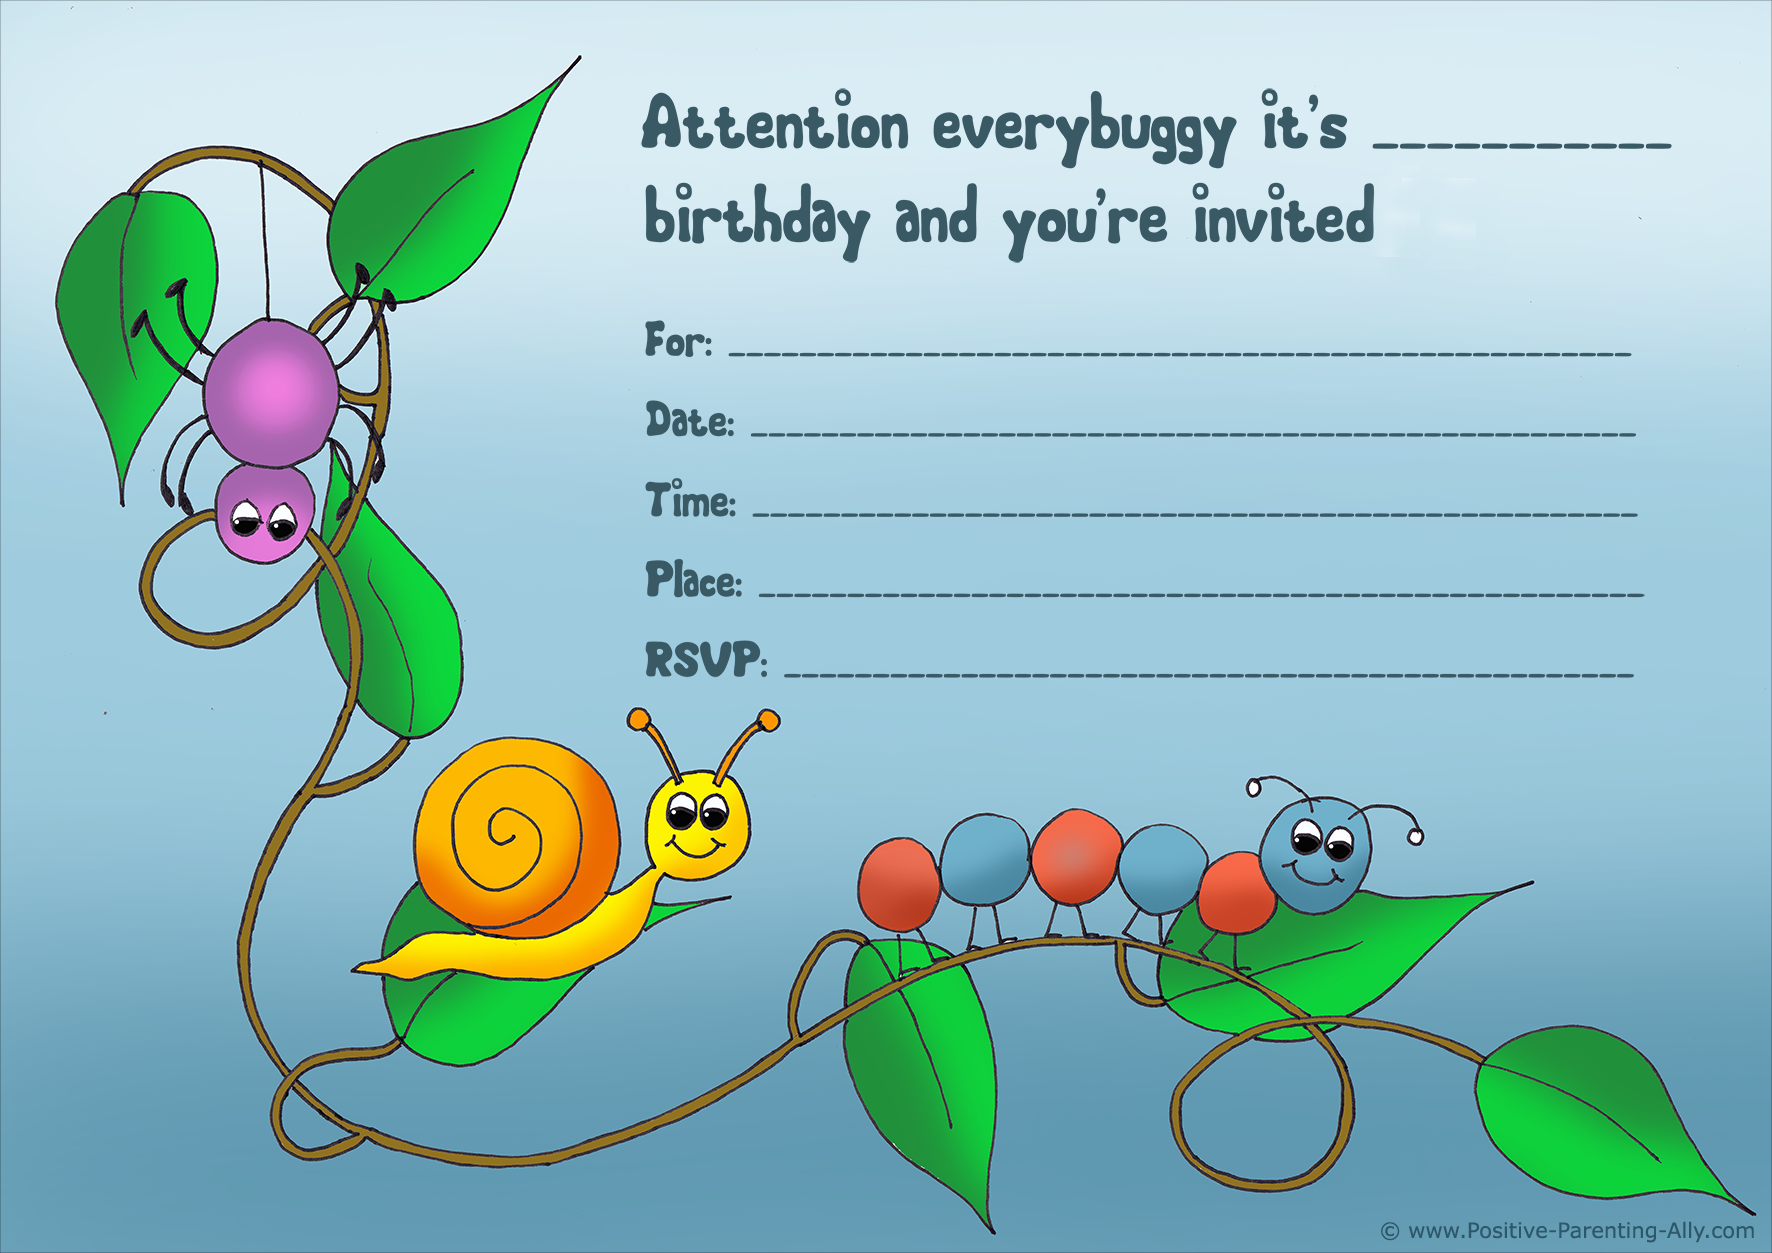 Cute birthday party invitation for kids with bugs.